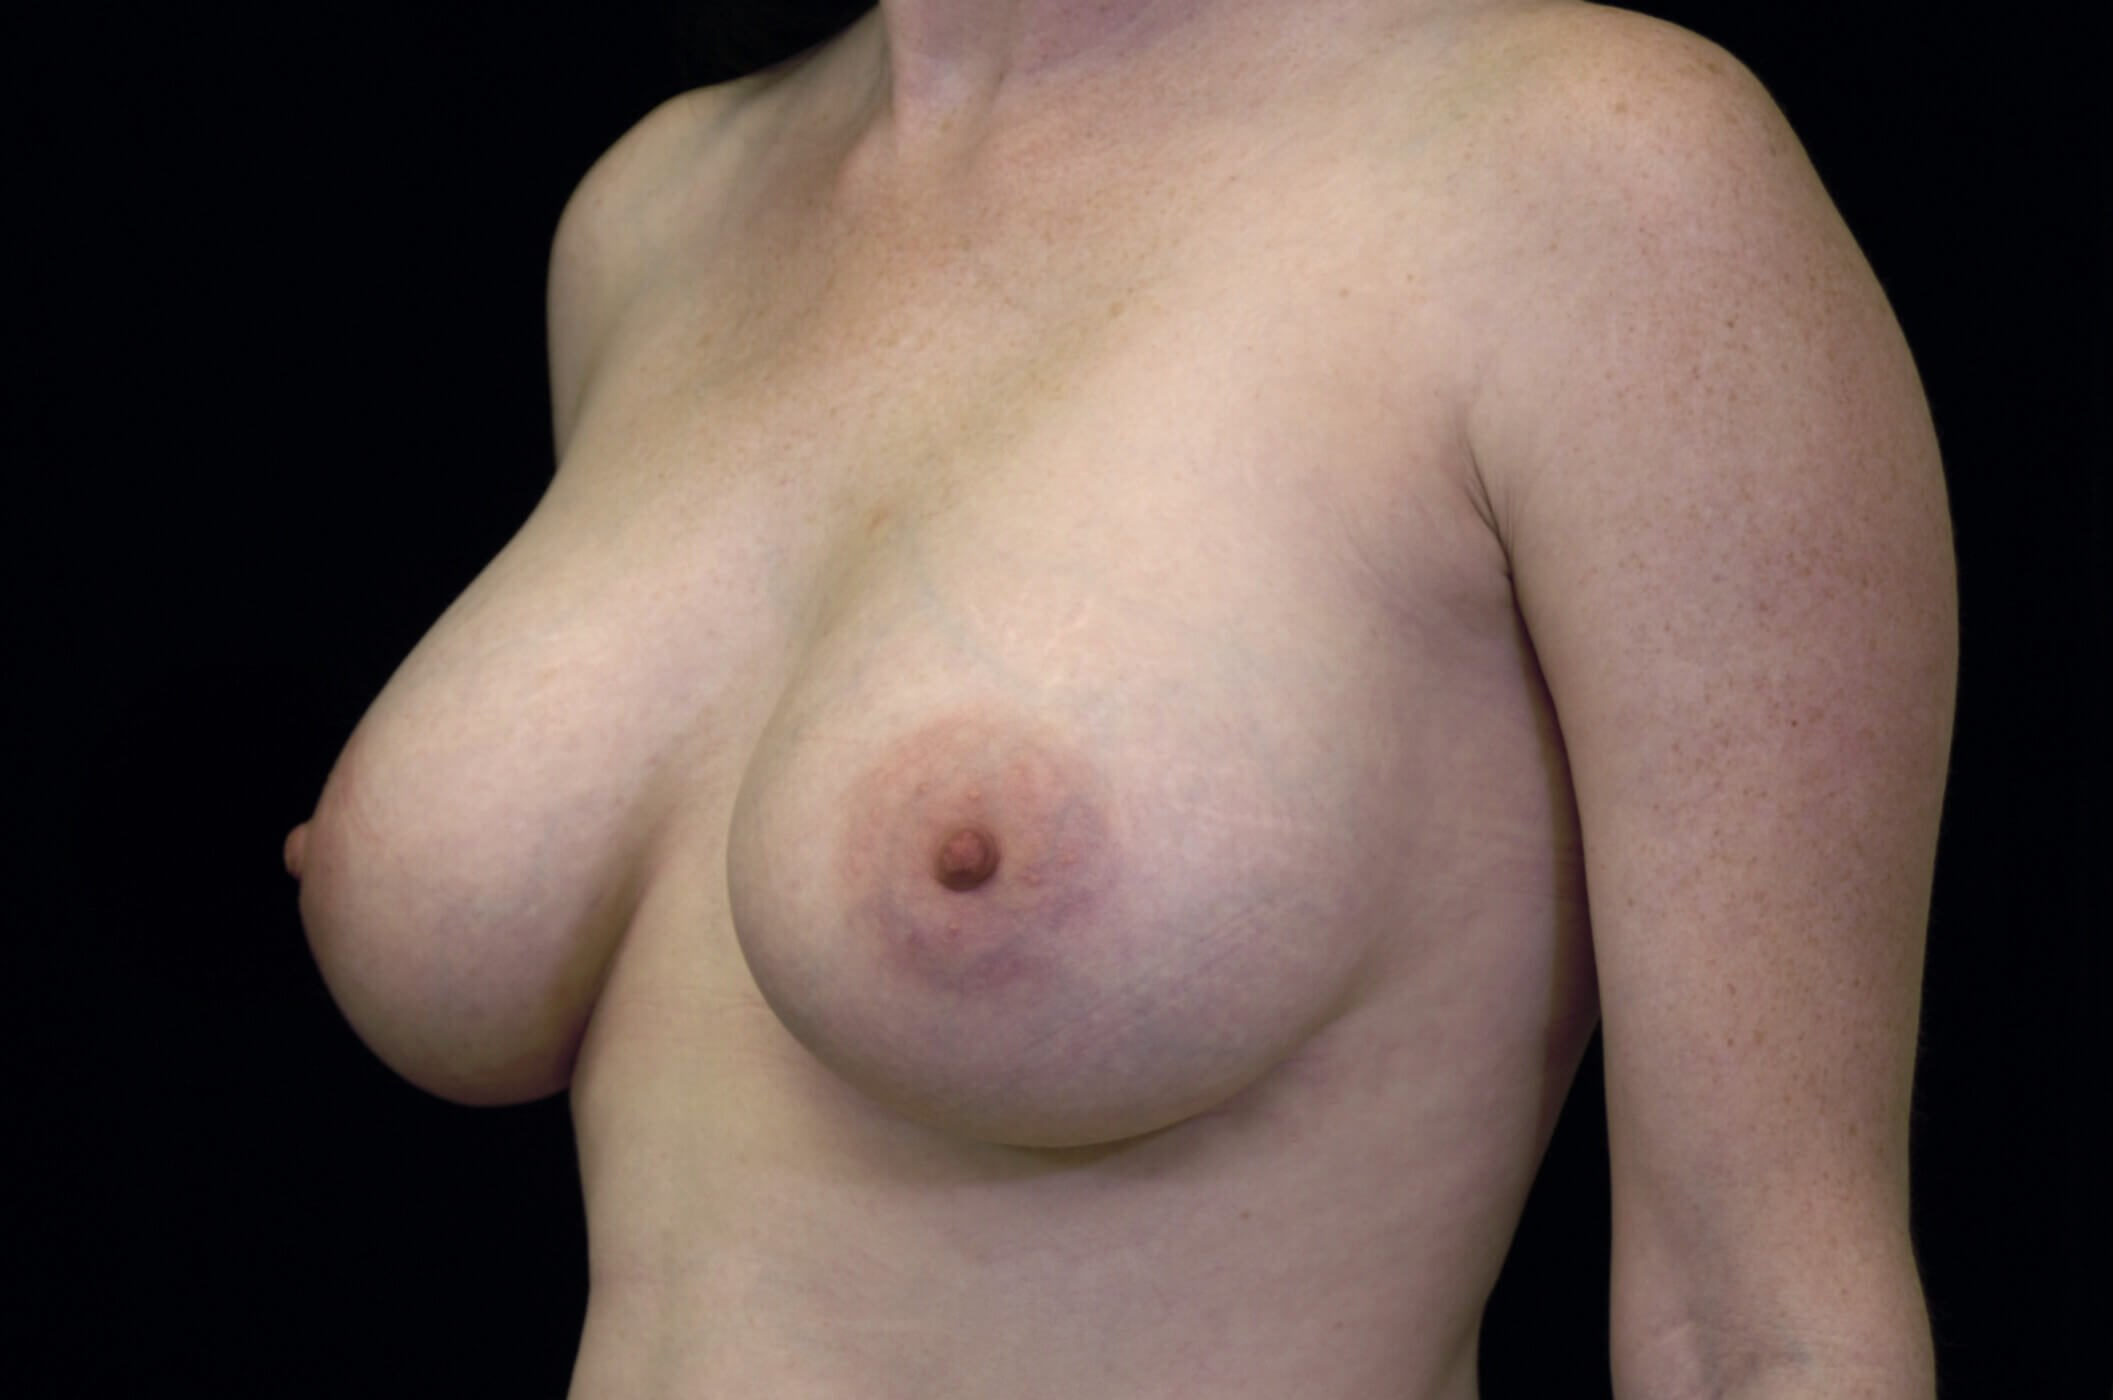 Breast Augmentation Procedure After Breast Augmentation